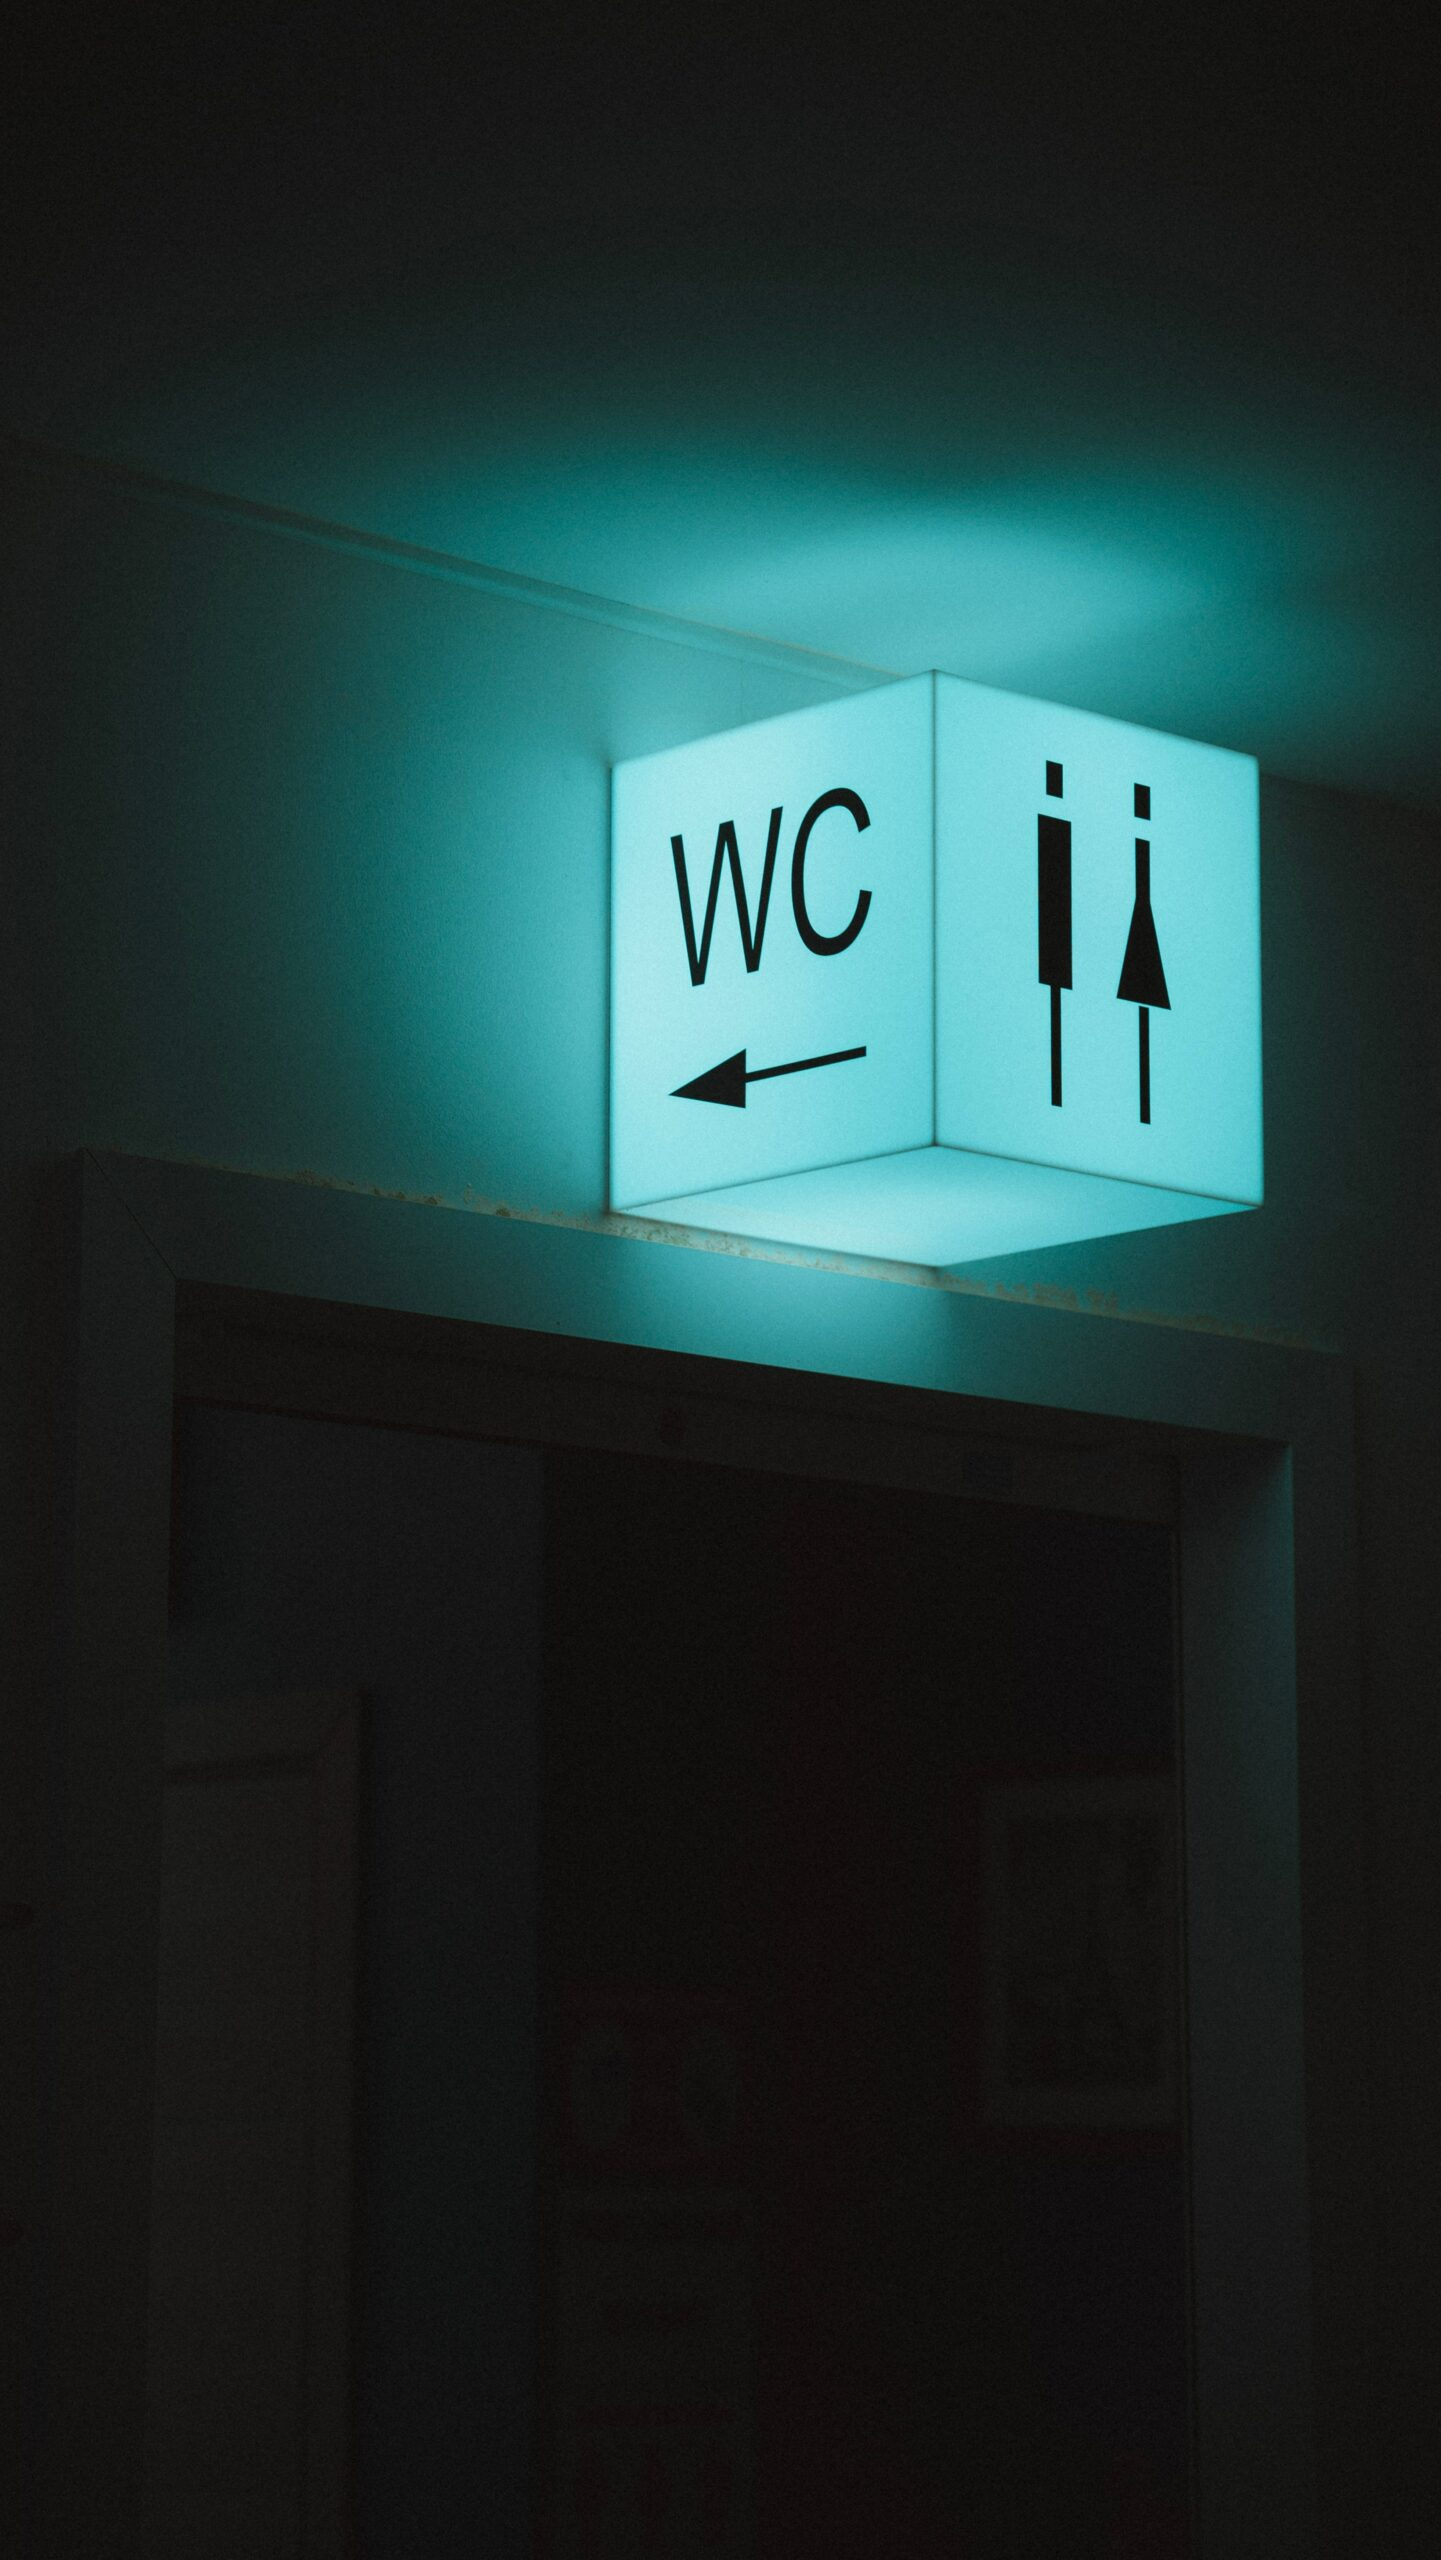 This is a dark image with a light cube with LEDs reading wc.